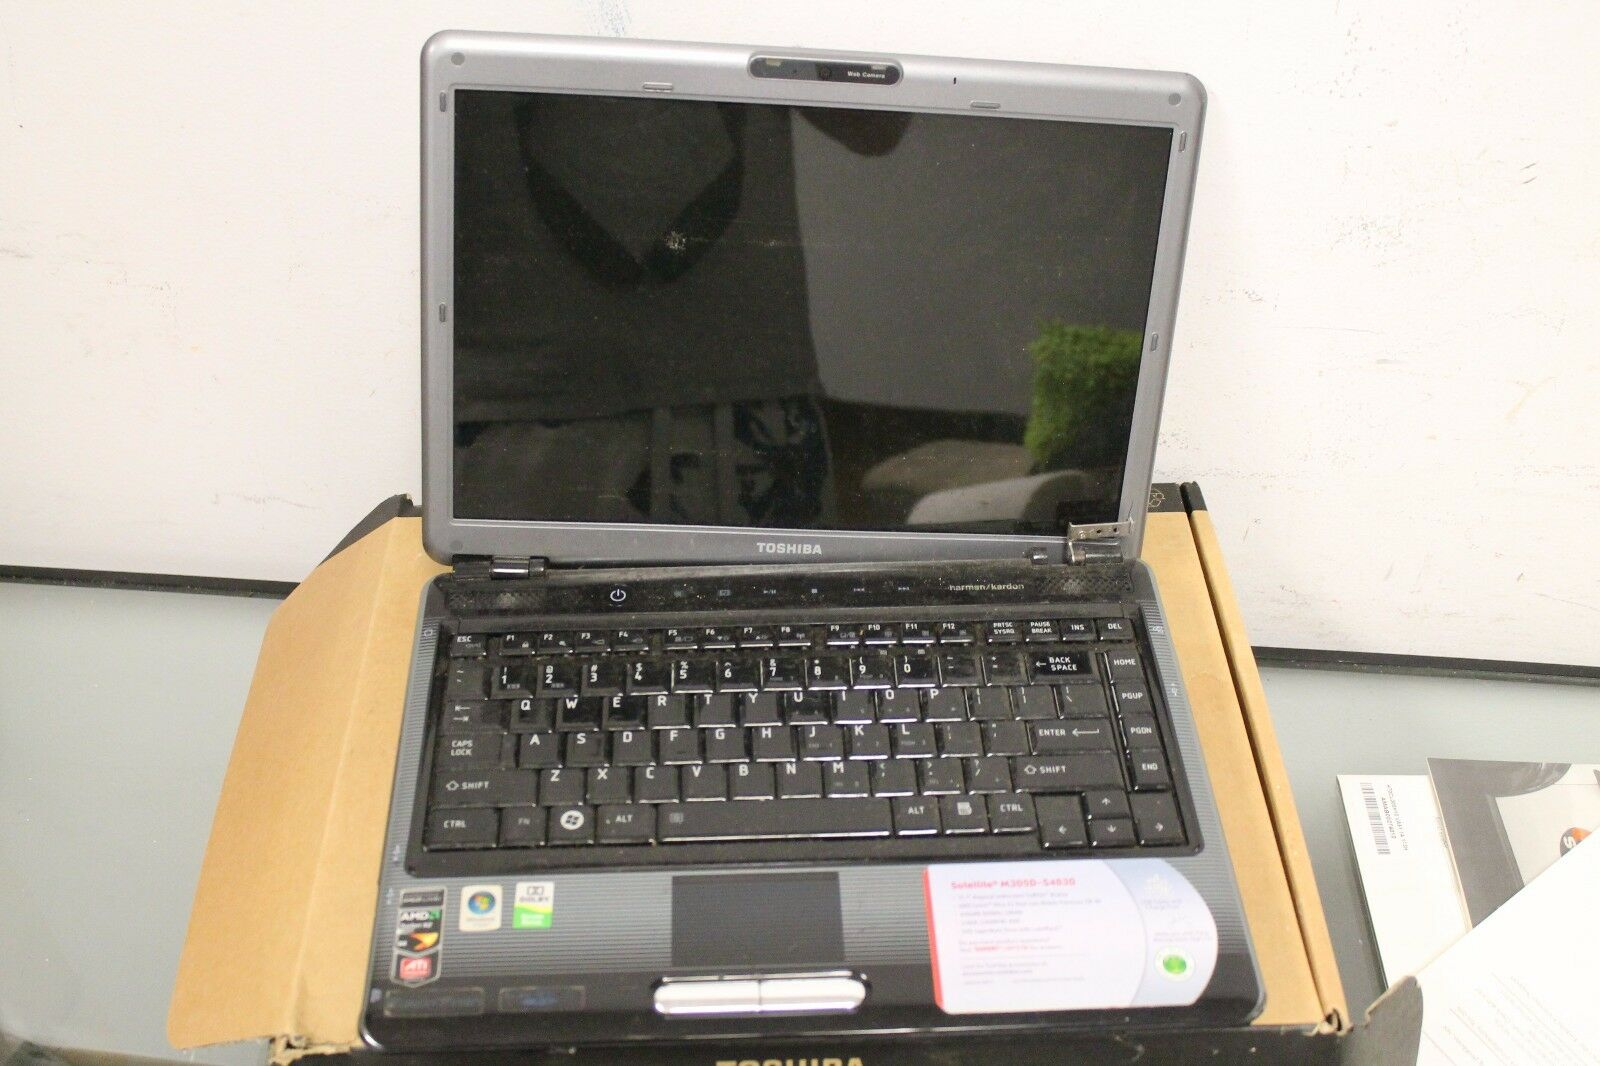 Toshiba Satellite m305d-s4830 FOR PARTS AS IS